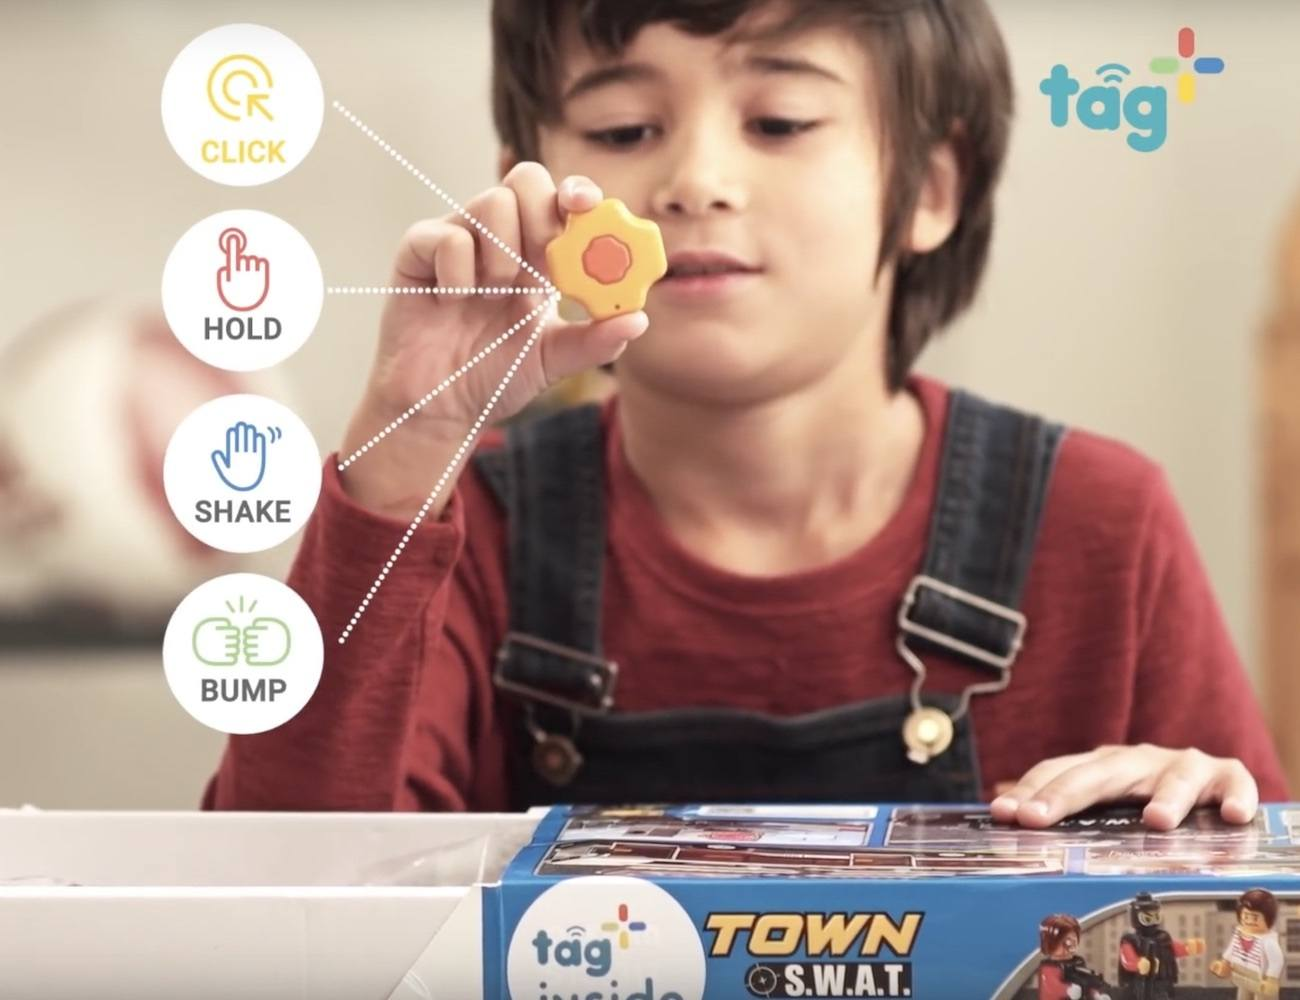 Samsung Tag+ Smart Playmate for Kids